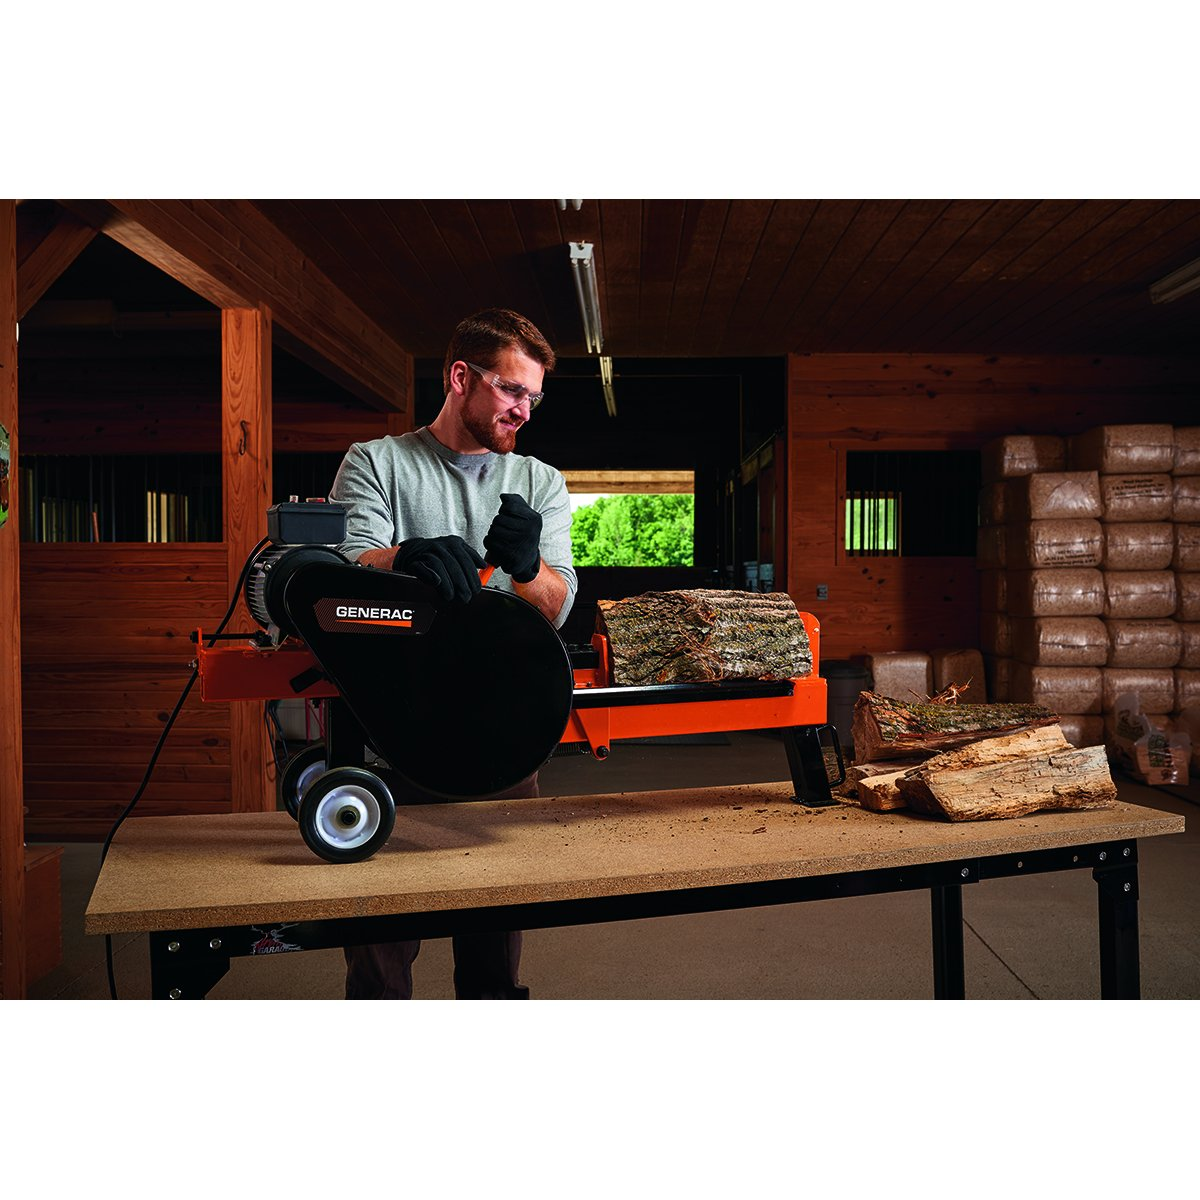 Generac K10, 10-Ton Kinetic Electric Log Splitter - 50 State/CSA Compliant